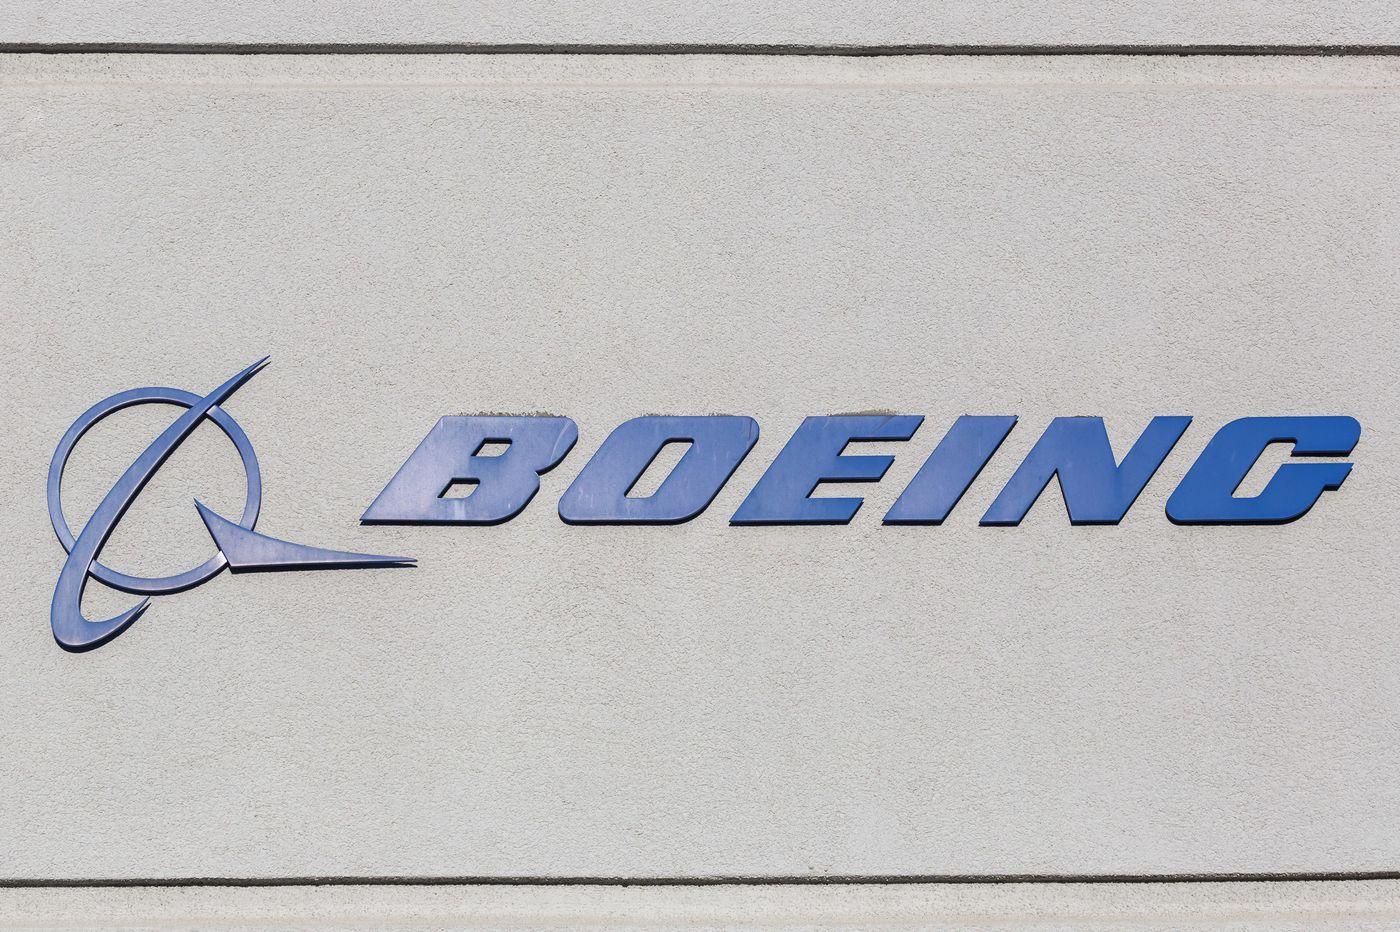 Beyond pilot trash talk, 737 Max documents reveal how intensely Boeing focused on cost